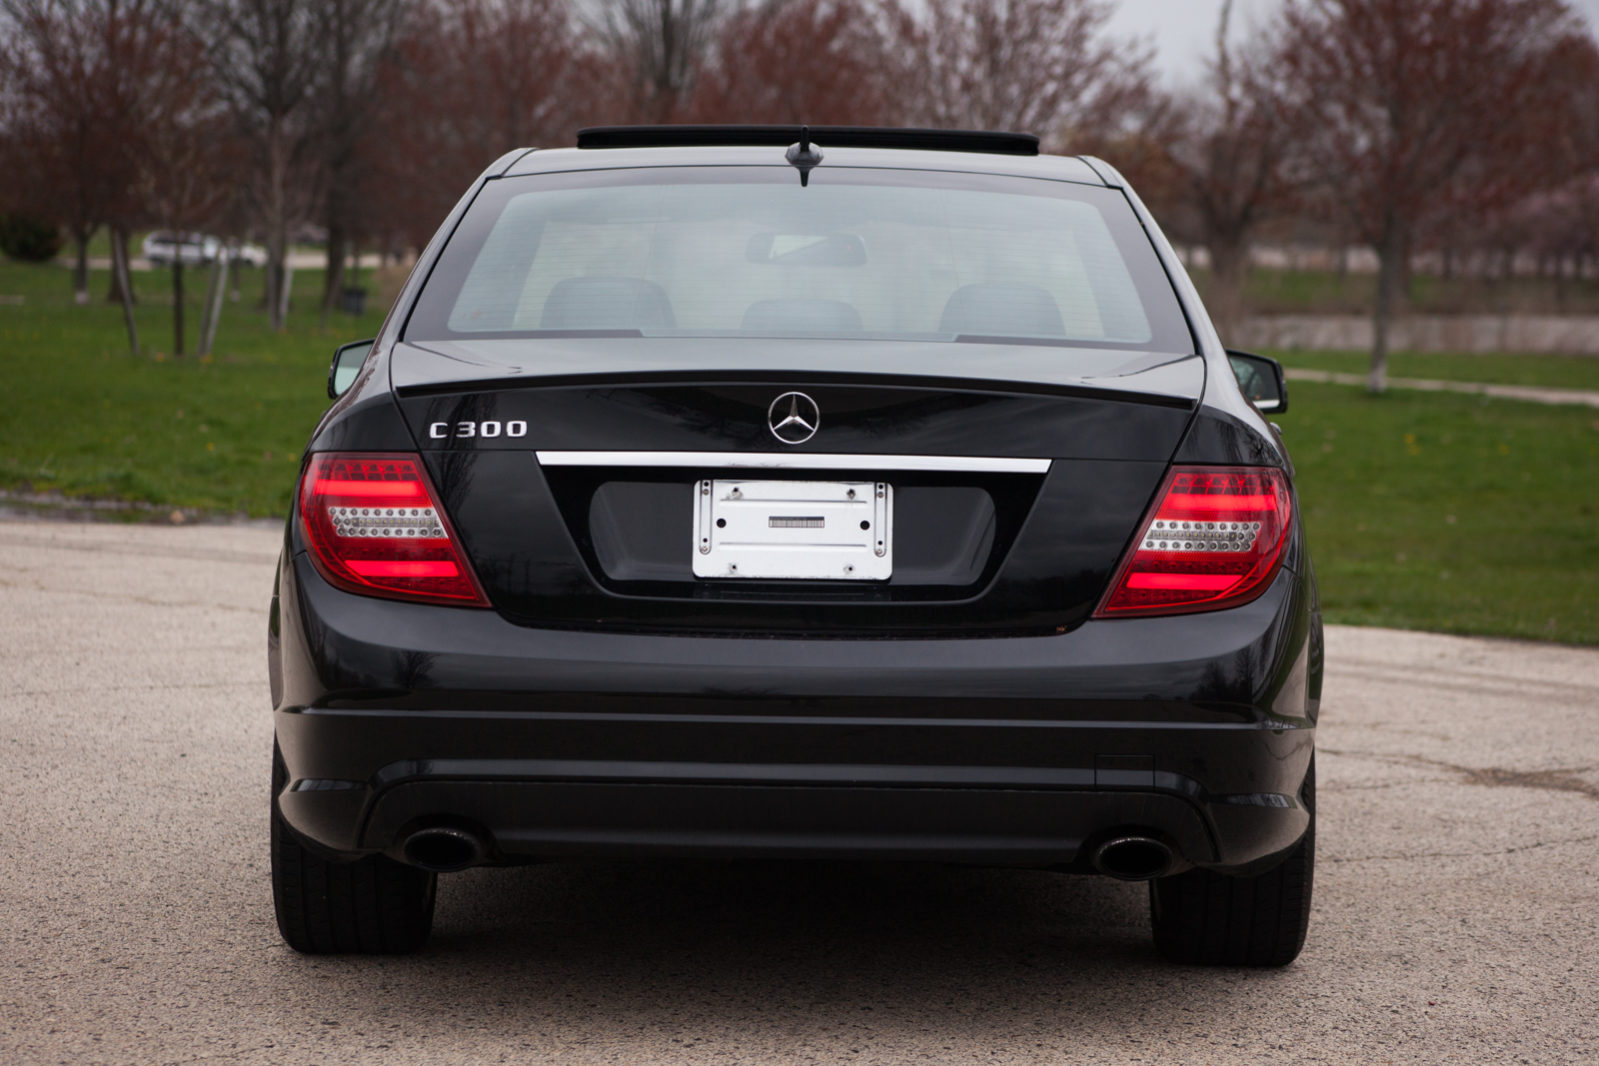 2010 Used Mercedes-Benz C300 For Sale   Car Dealership in ...